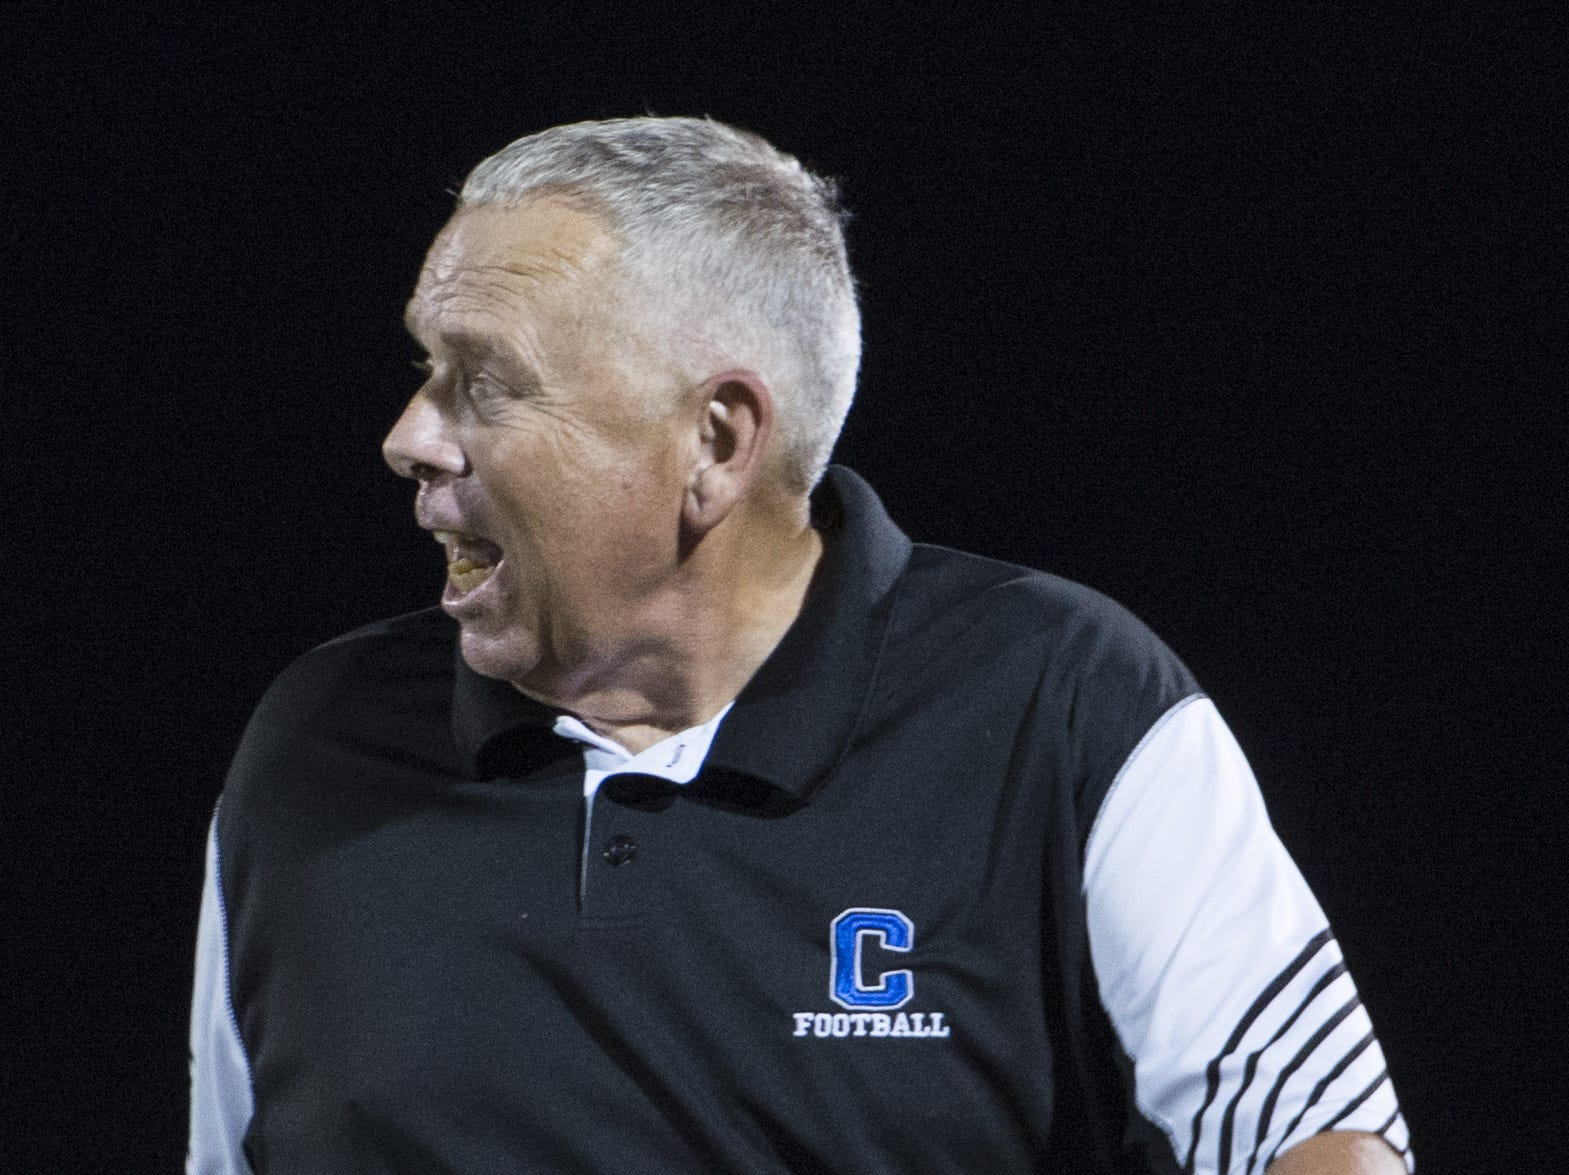 Chillicothe's head coach Ron Hinton yells in response to a referee's call at Logan High School on Friday, Sept. 21, 2018. The Cavaliers defeated the Logan High Chieftains 7-6.